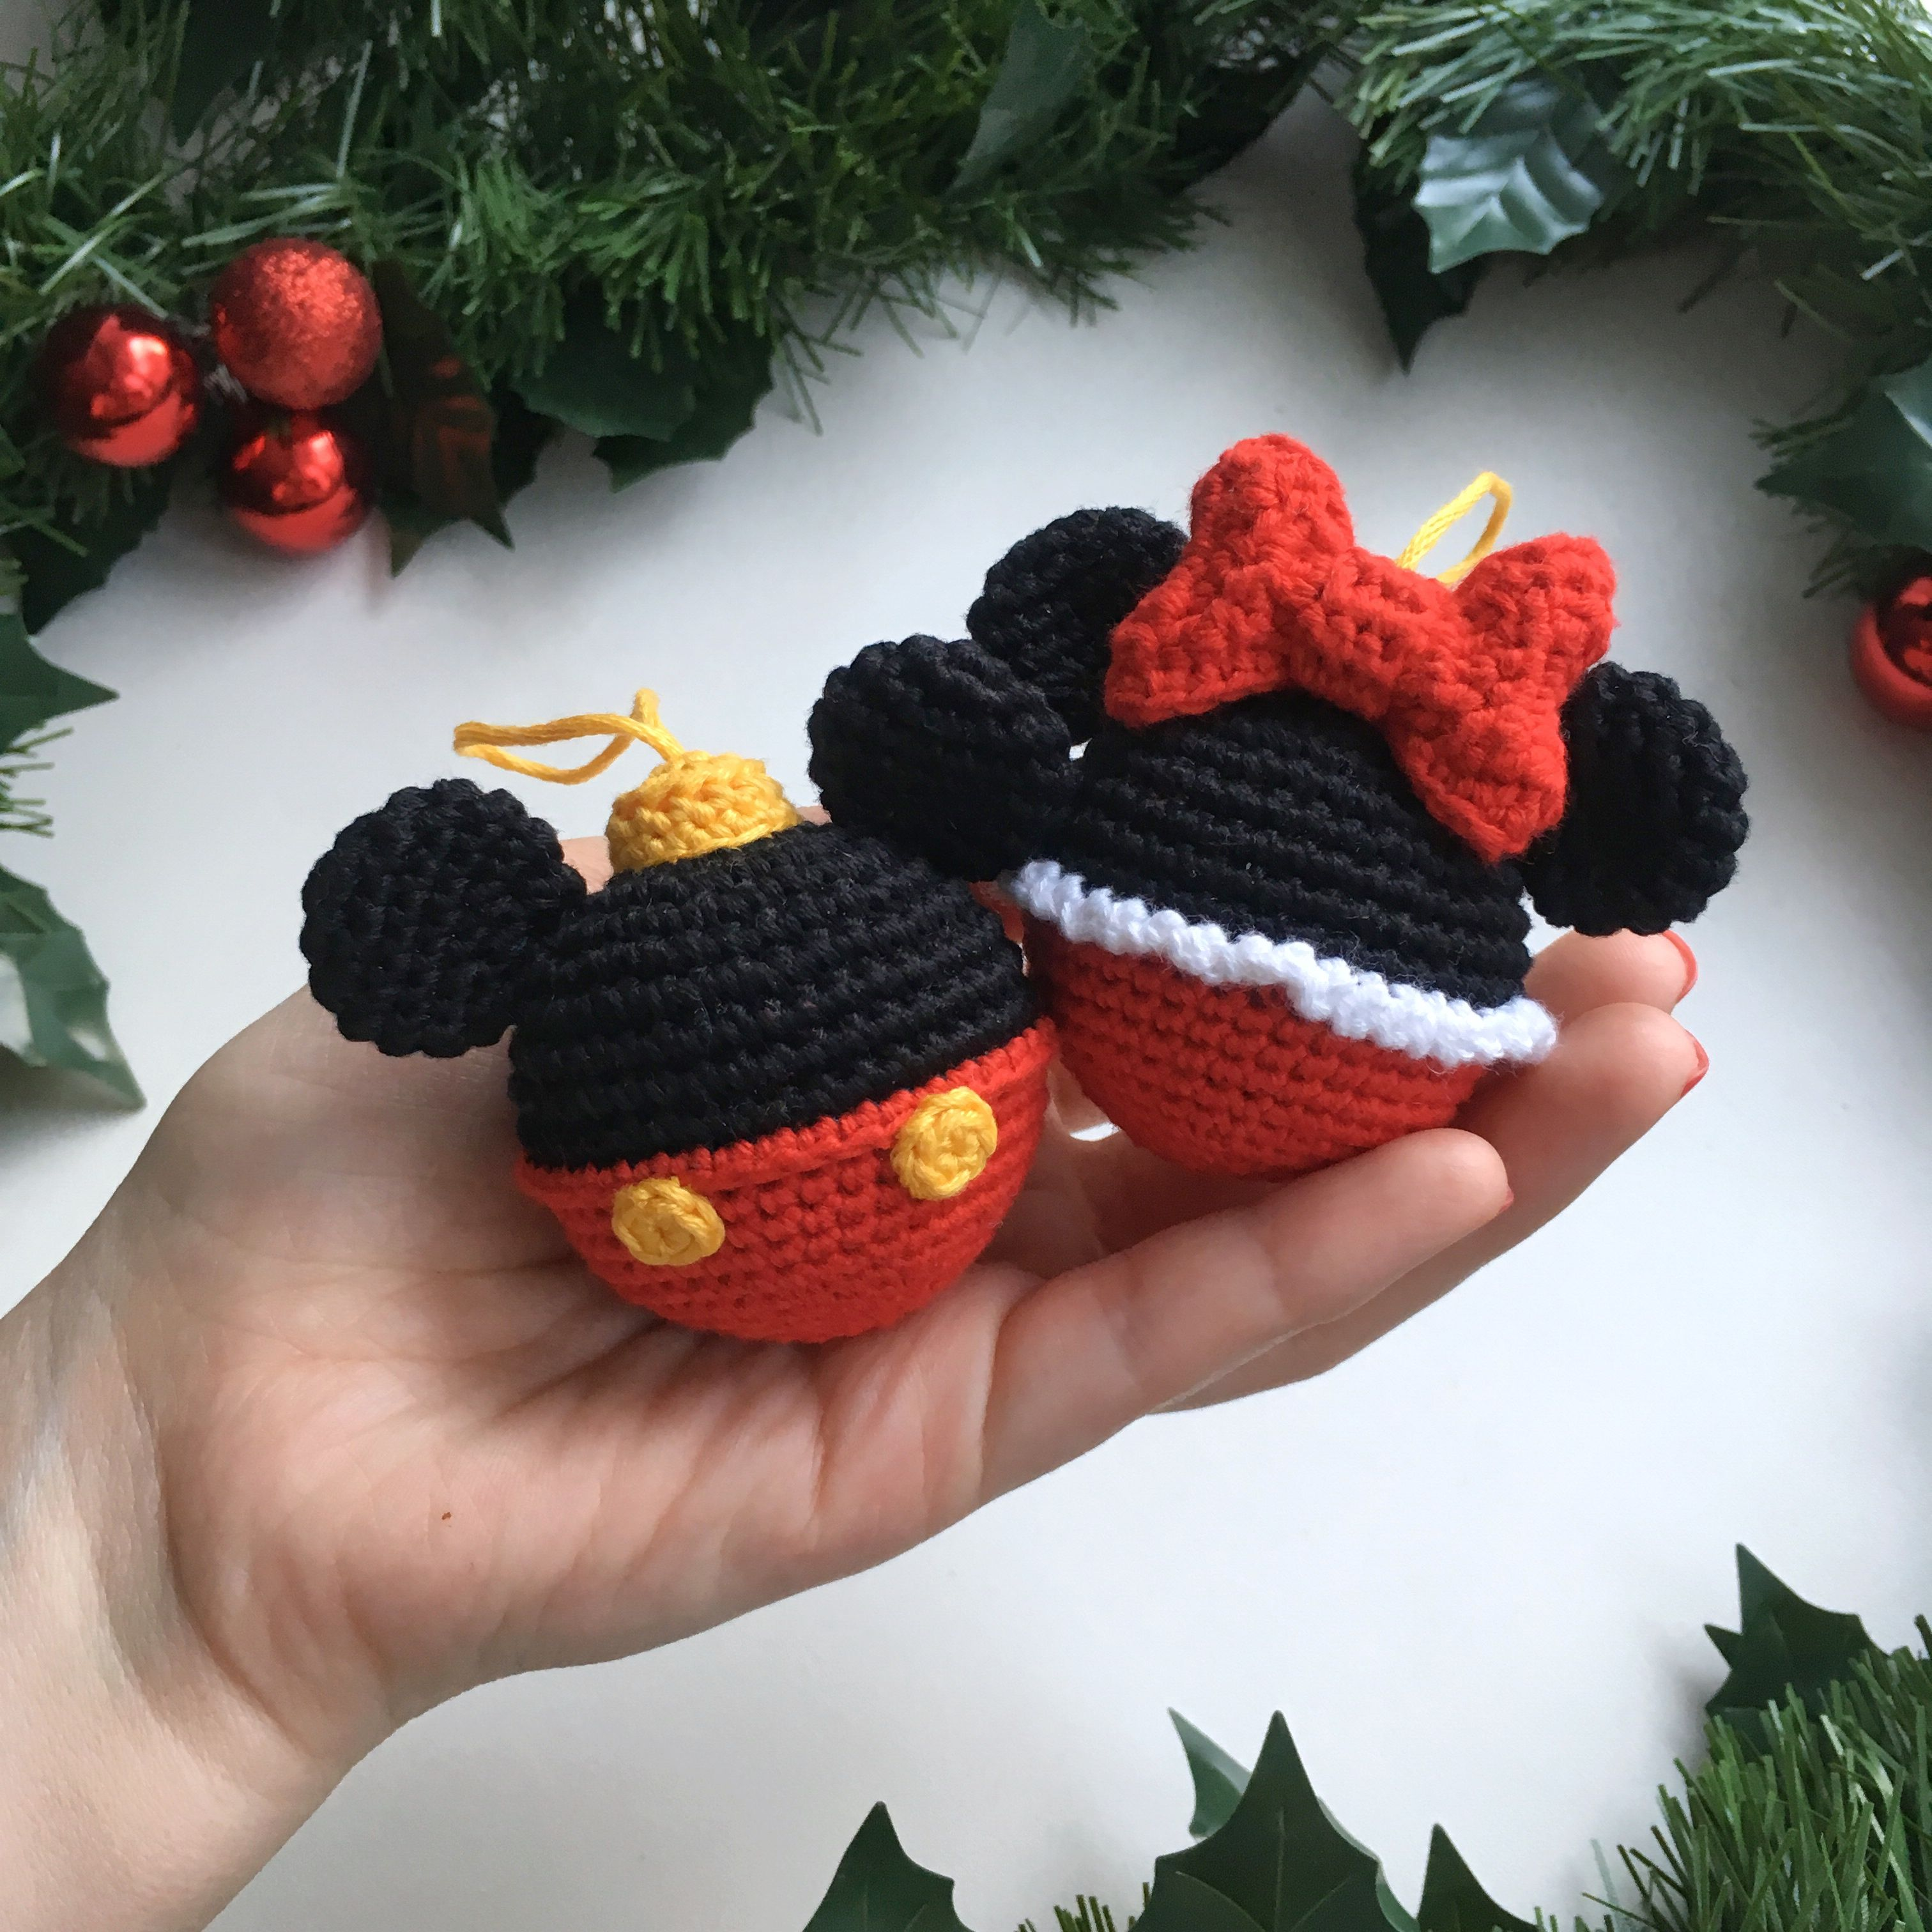 Disney bauble ball Mickey&Minnie Mouse crochet pattern Christmas ball Crochet Mickey tutorial Christmas Gift Minnie Mouse Bauble Decoration #christmascrochetpatterns